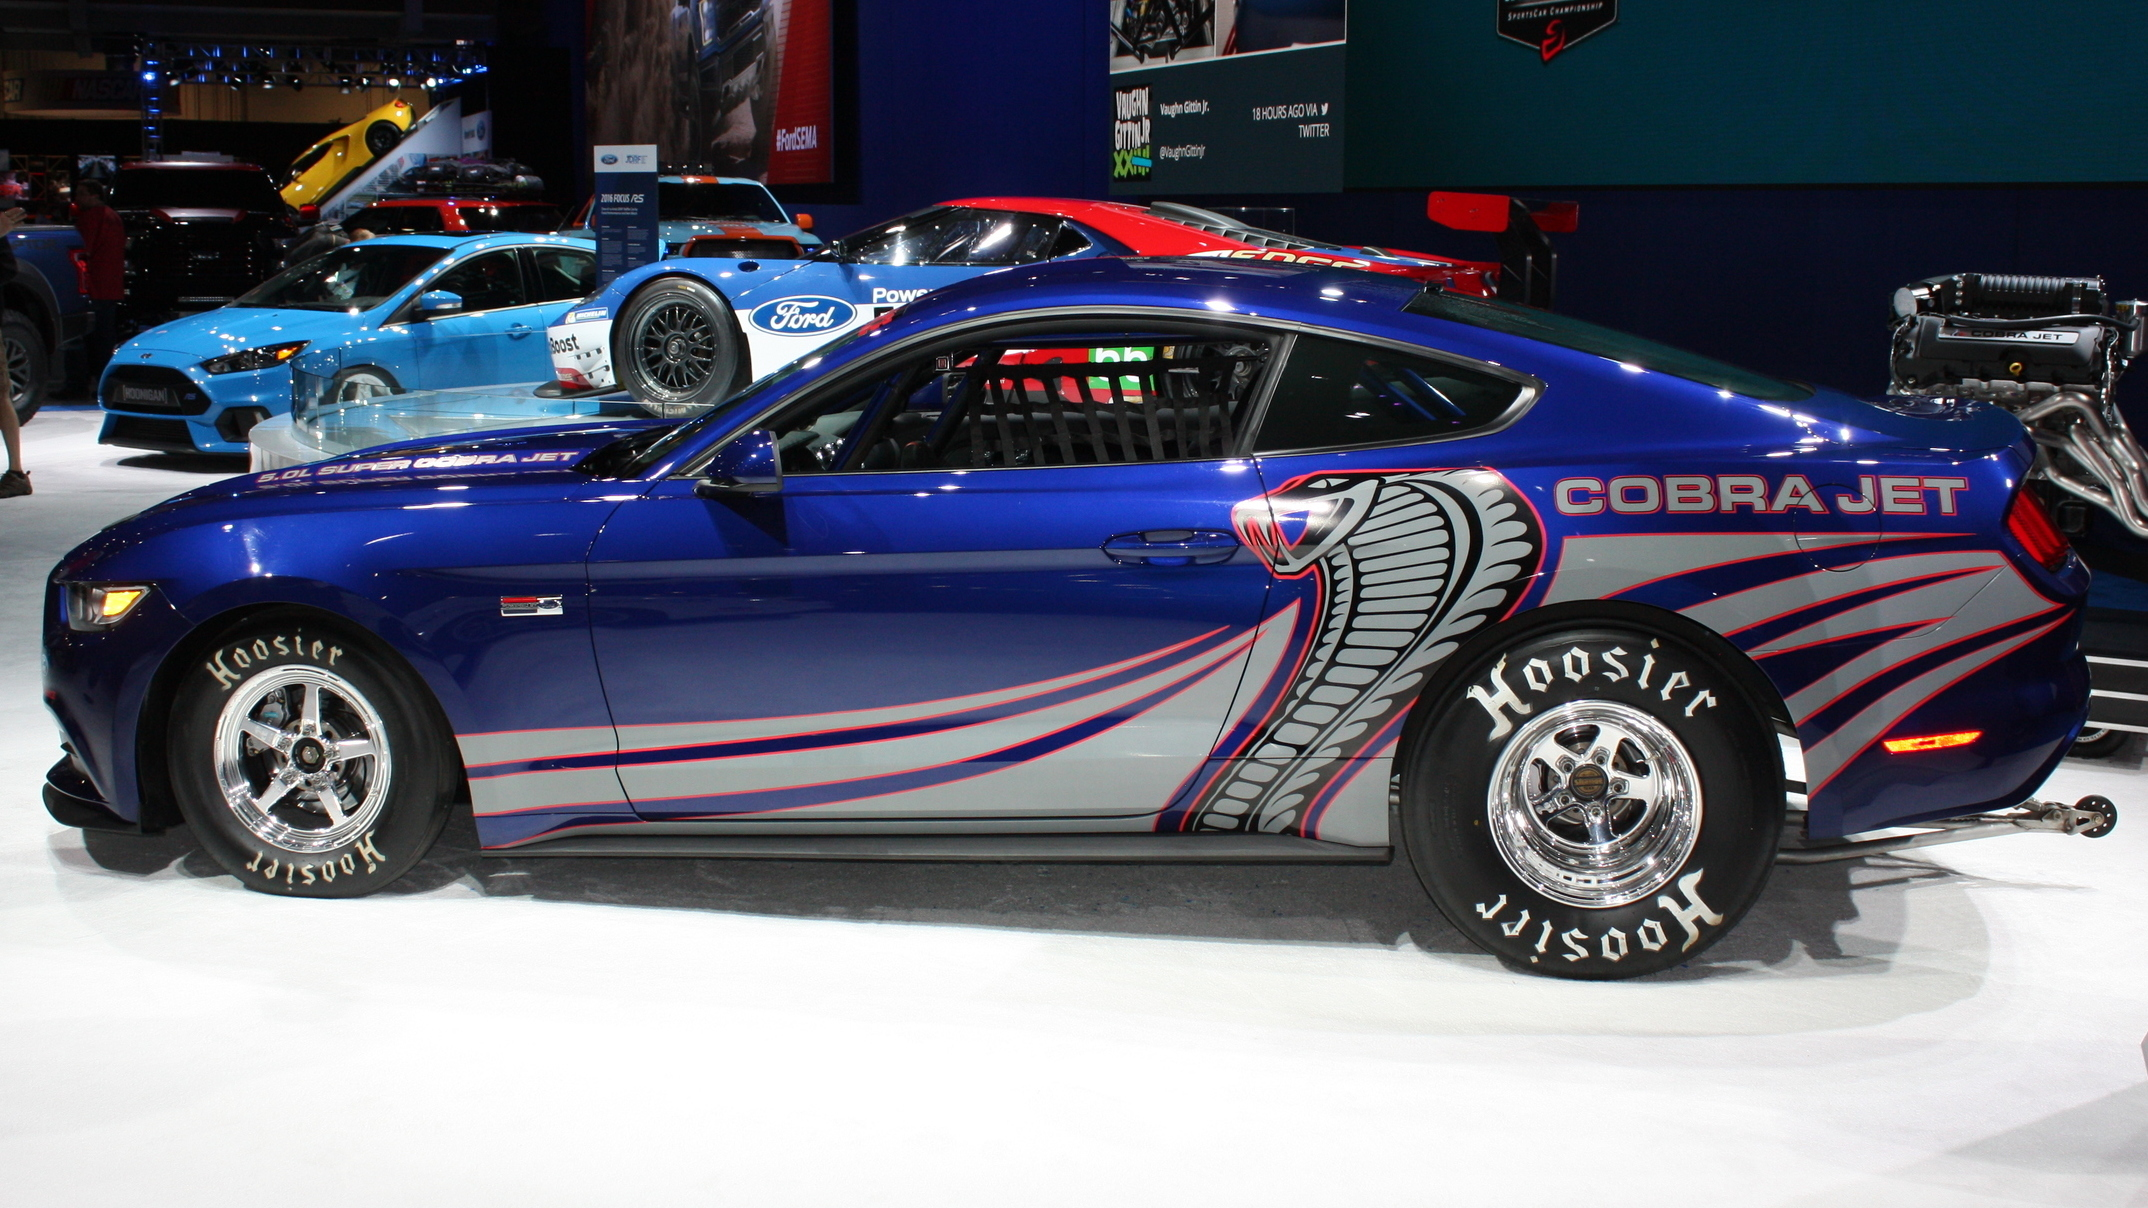 Ford Cobra Jet Mustang  Seconds For Quarter Mile